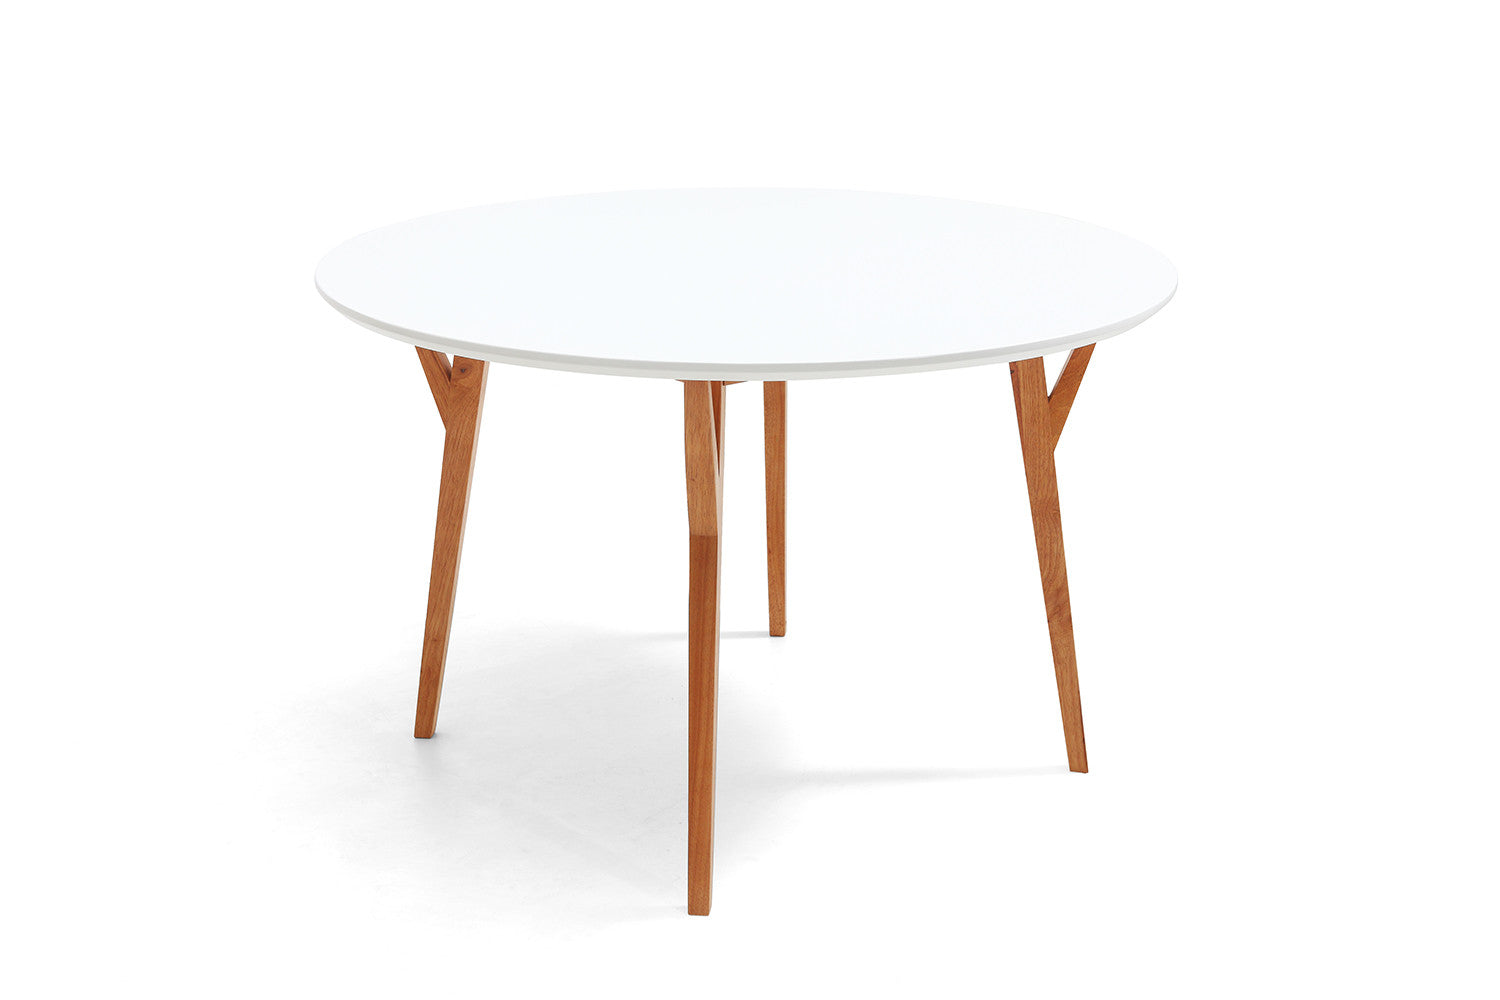 Table de salle manger ronde design scandinave moesa for Table salle a manger ronde scandinave